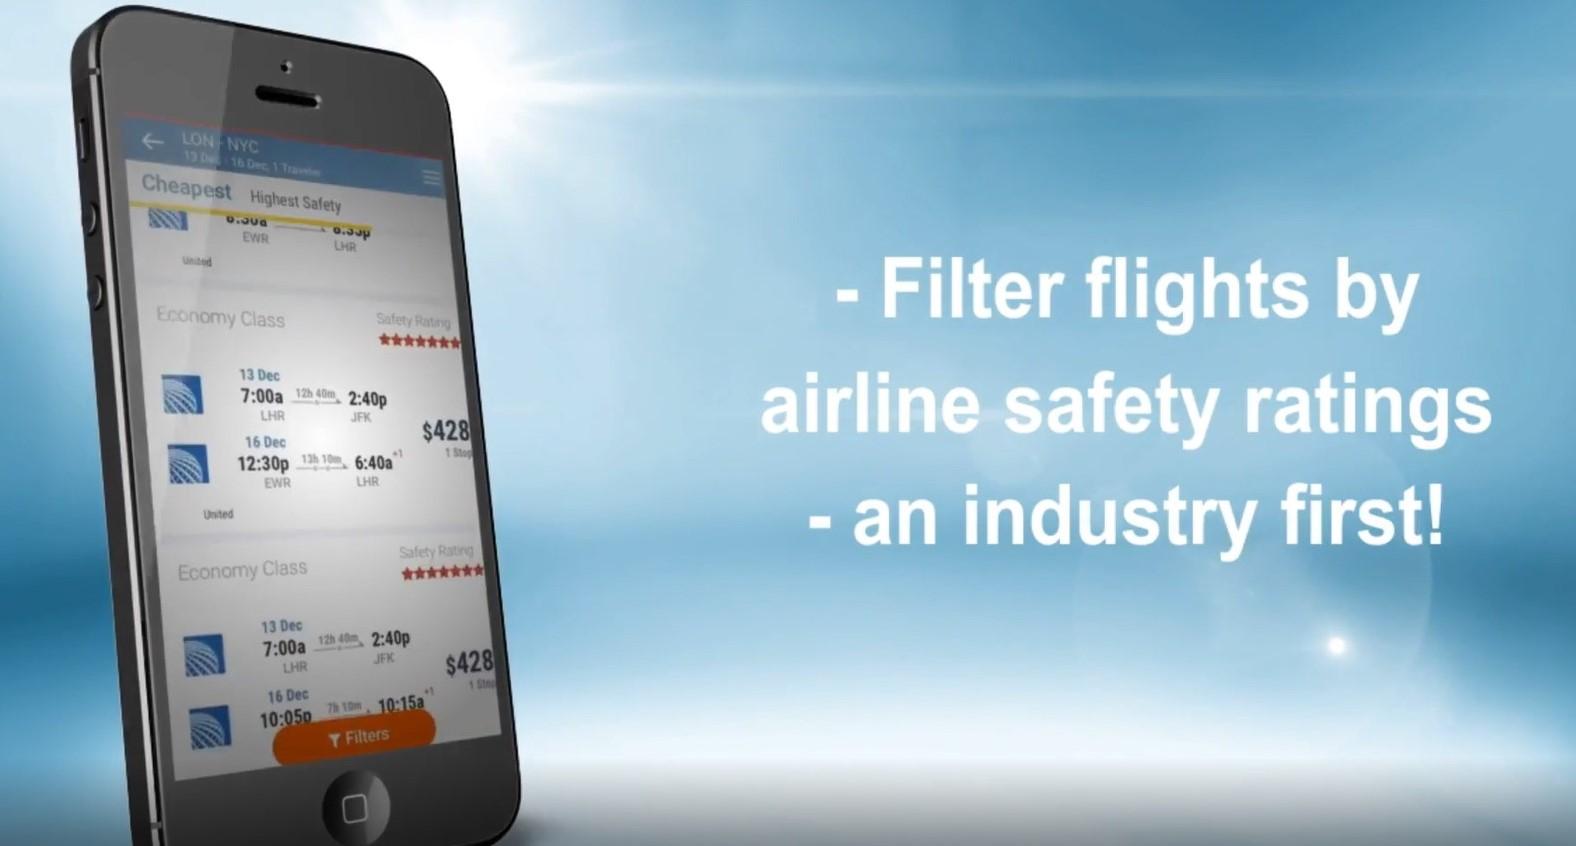 AirlineRatings.com exciting new app